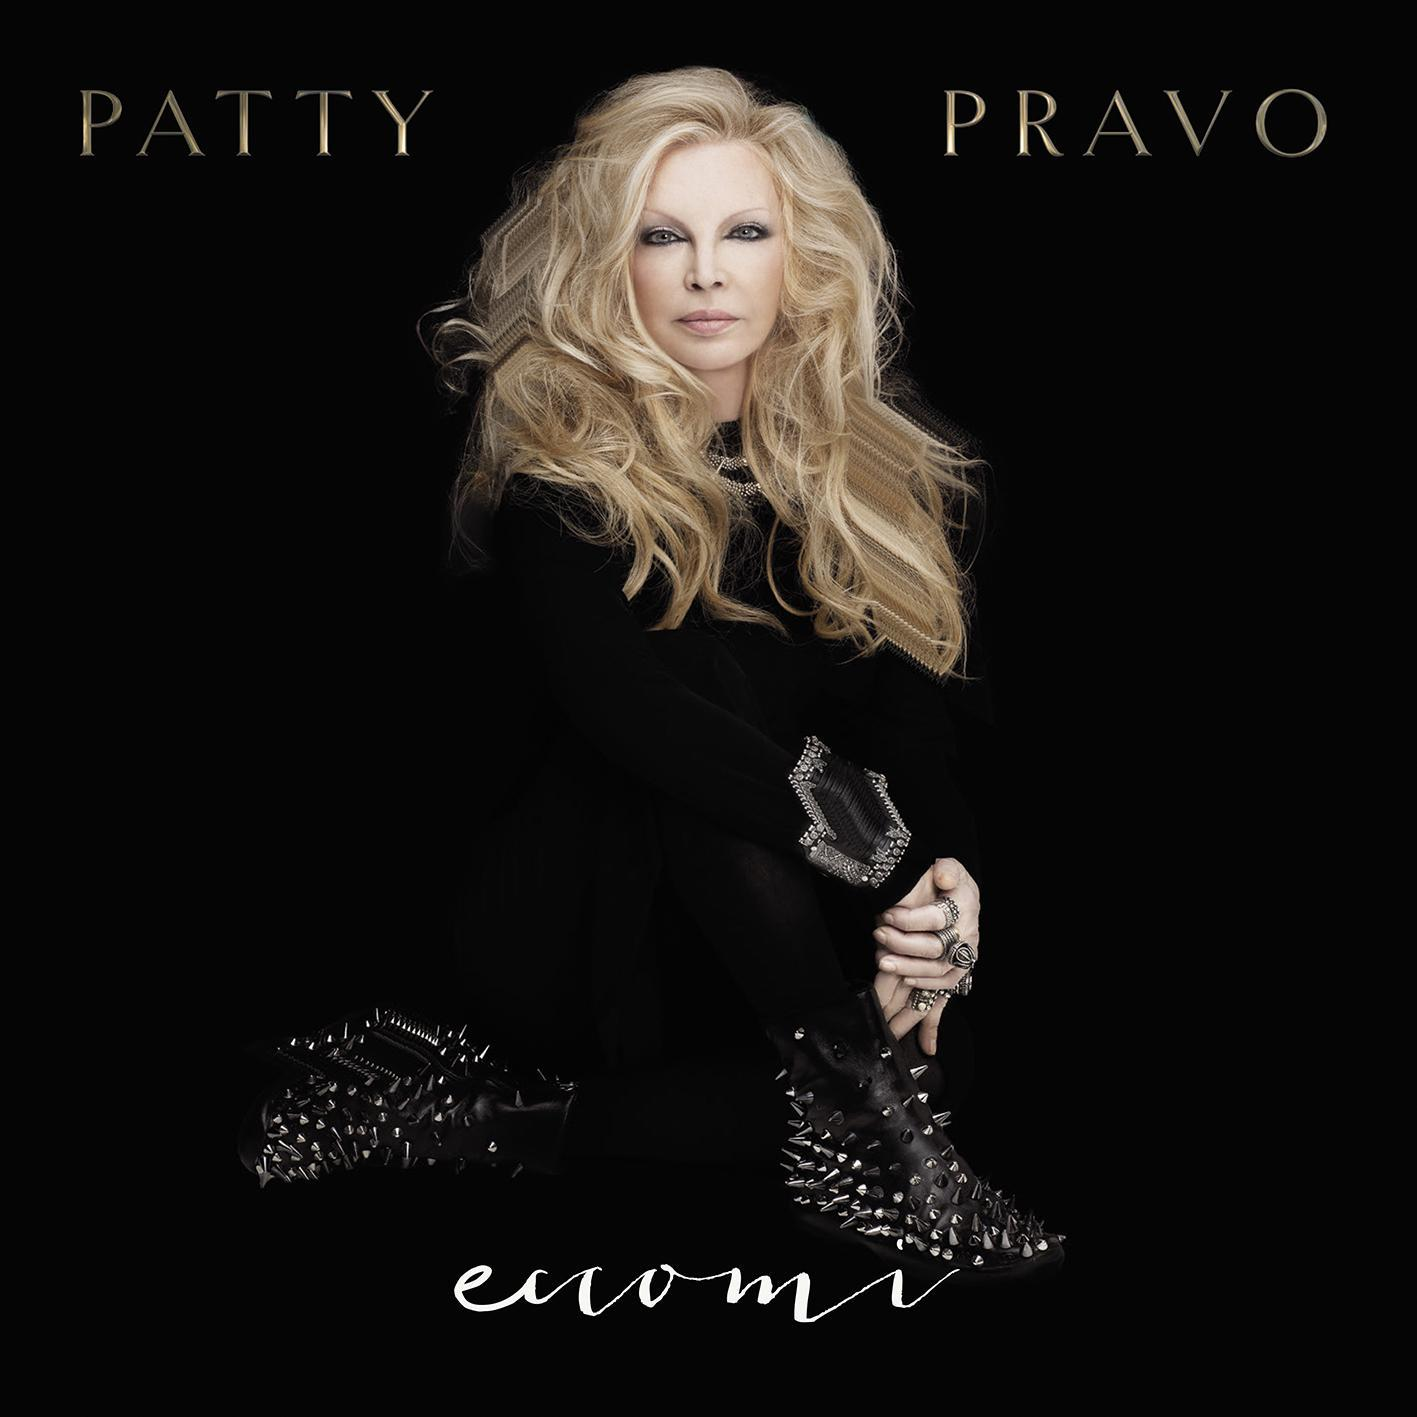 patty pravo cieli immensi